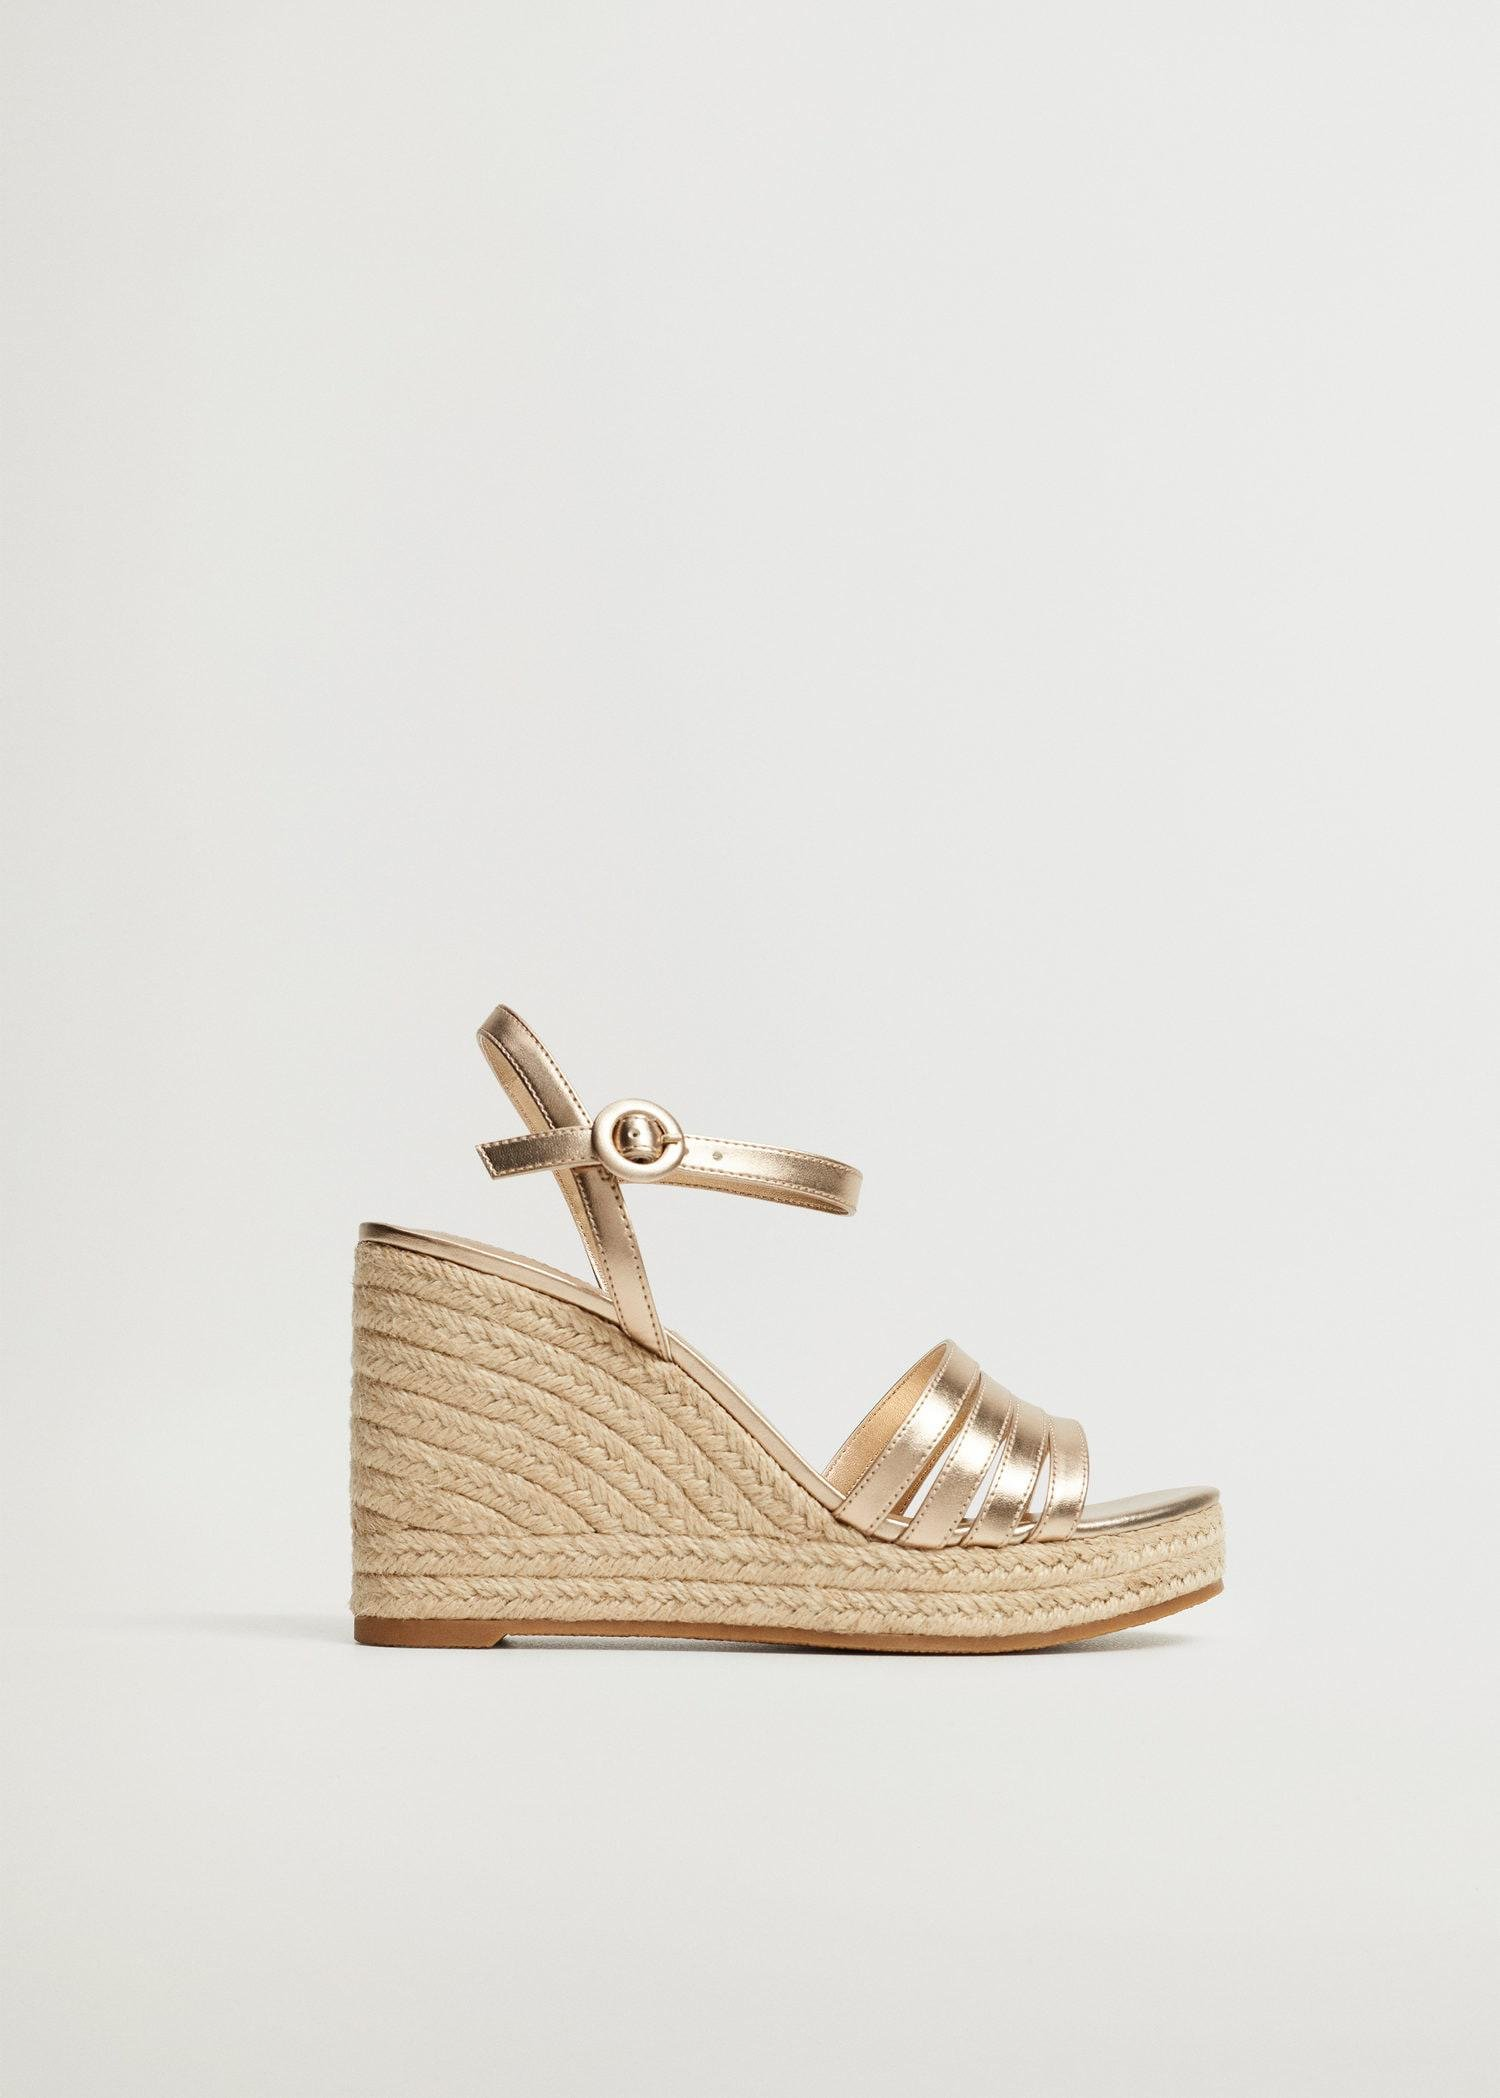 Metallic wedge sandals with straps